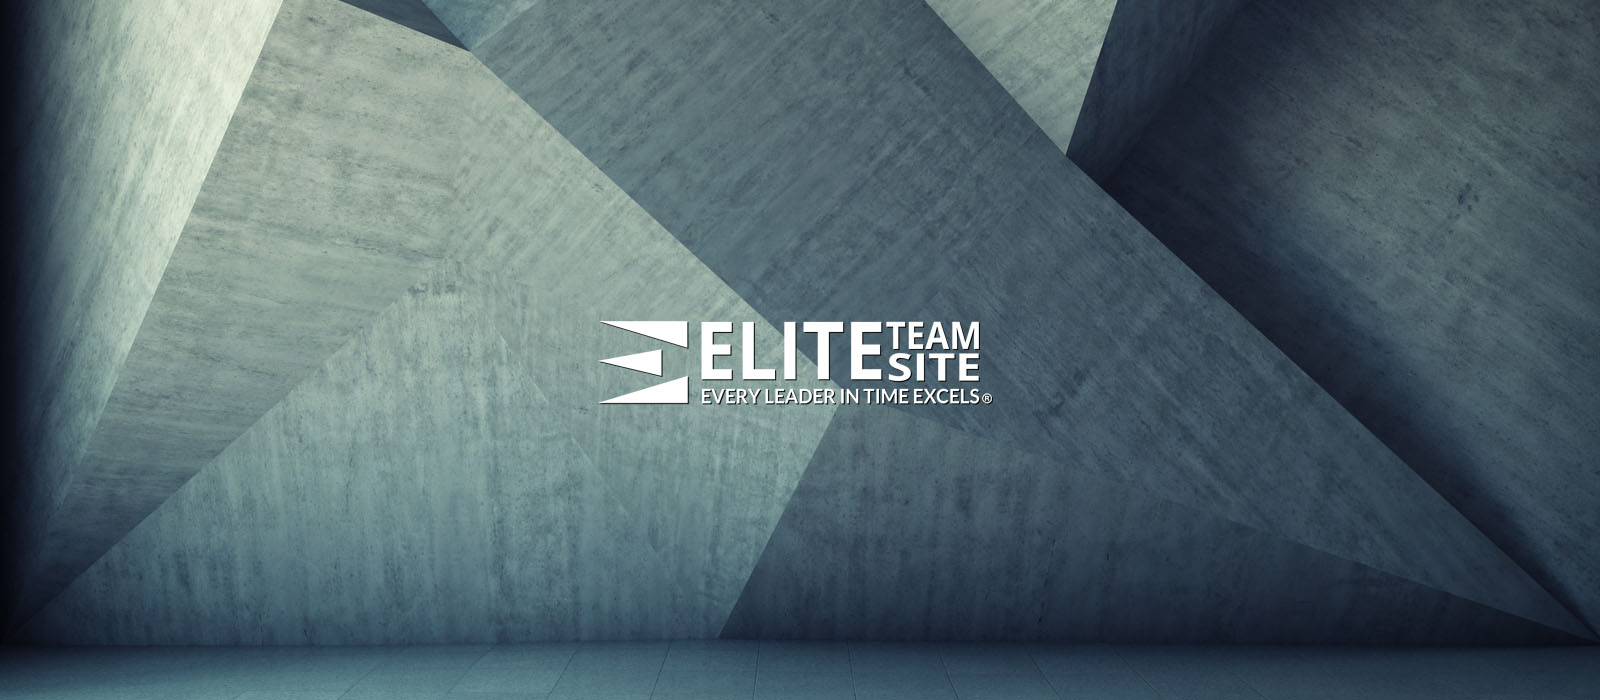 elite team site header 2